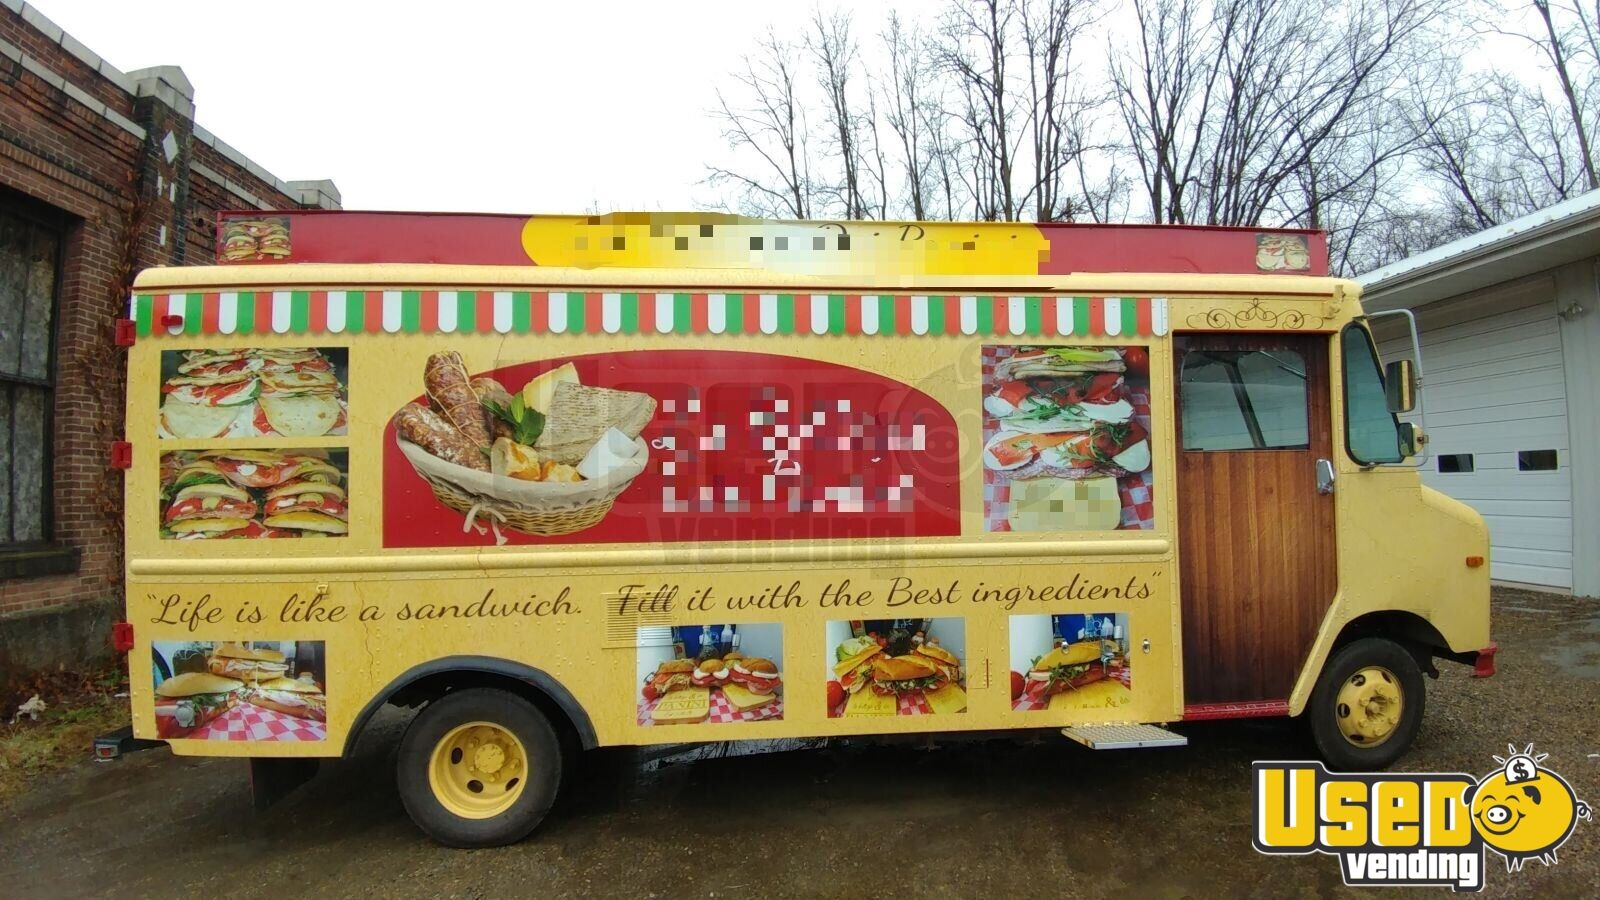 1990 Gmcbox Truck All-purpose Food Truck Concession Window Pennsylvania Diesel Engine for Sale - 2